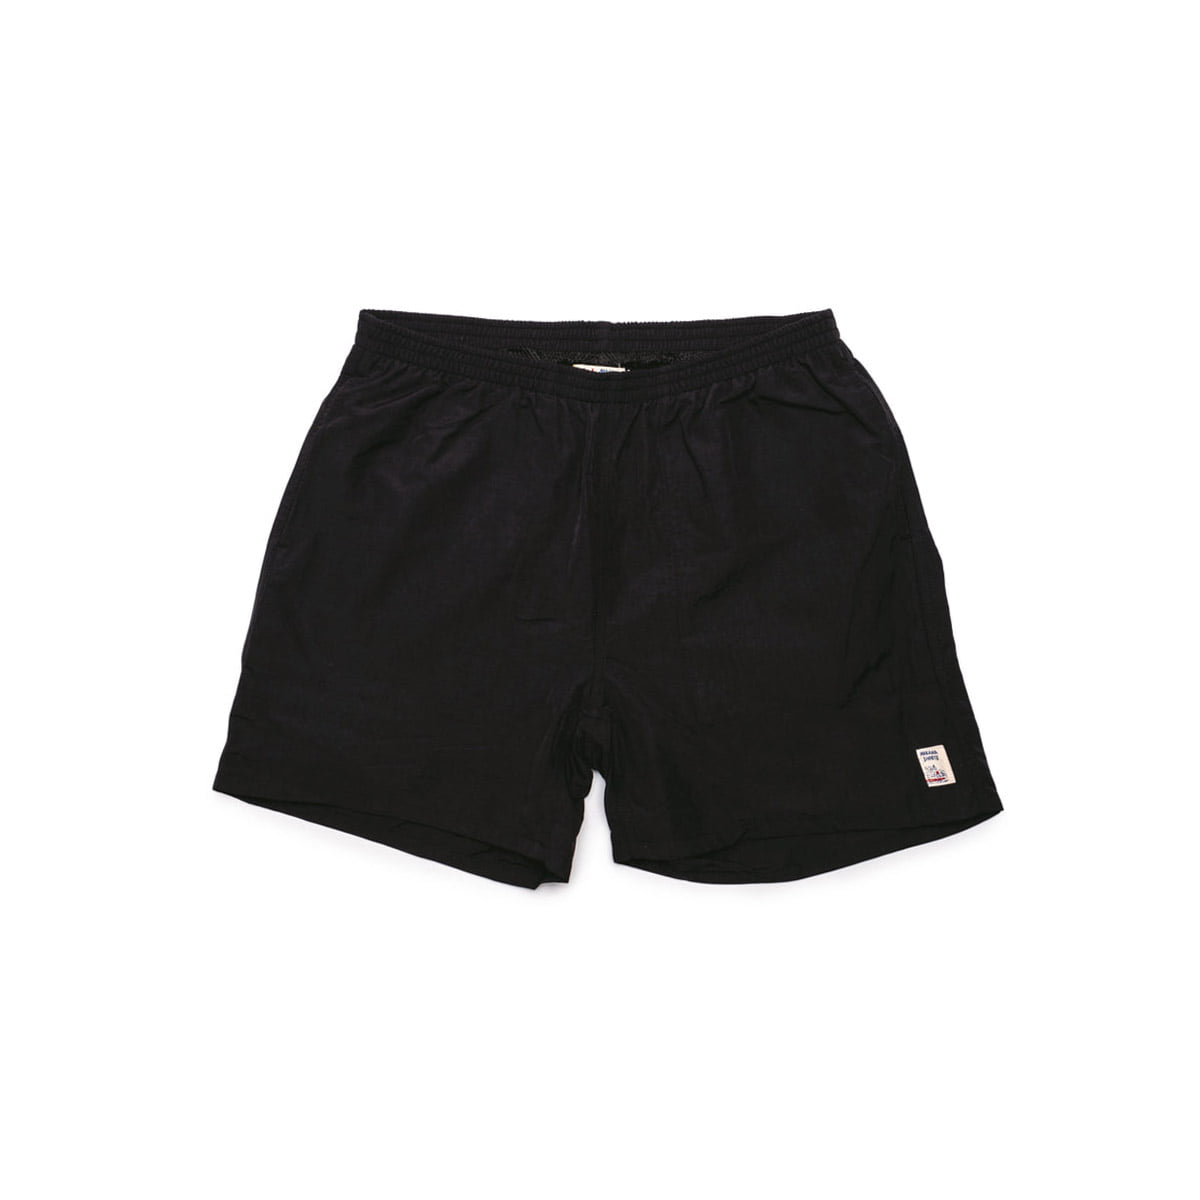 [M.Nii] FATIGUE SHORTS 'BLACK'